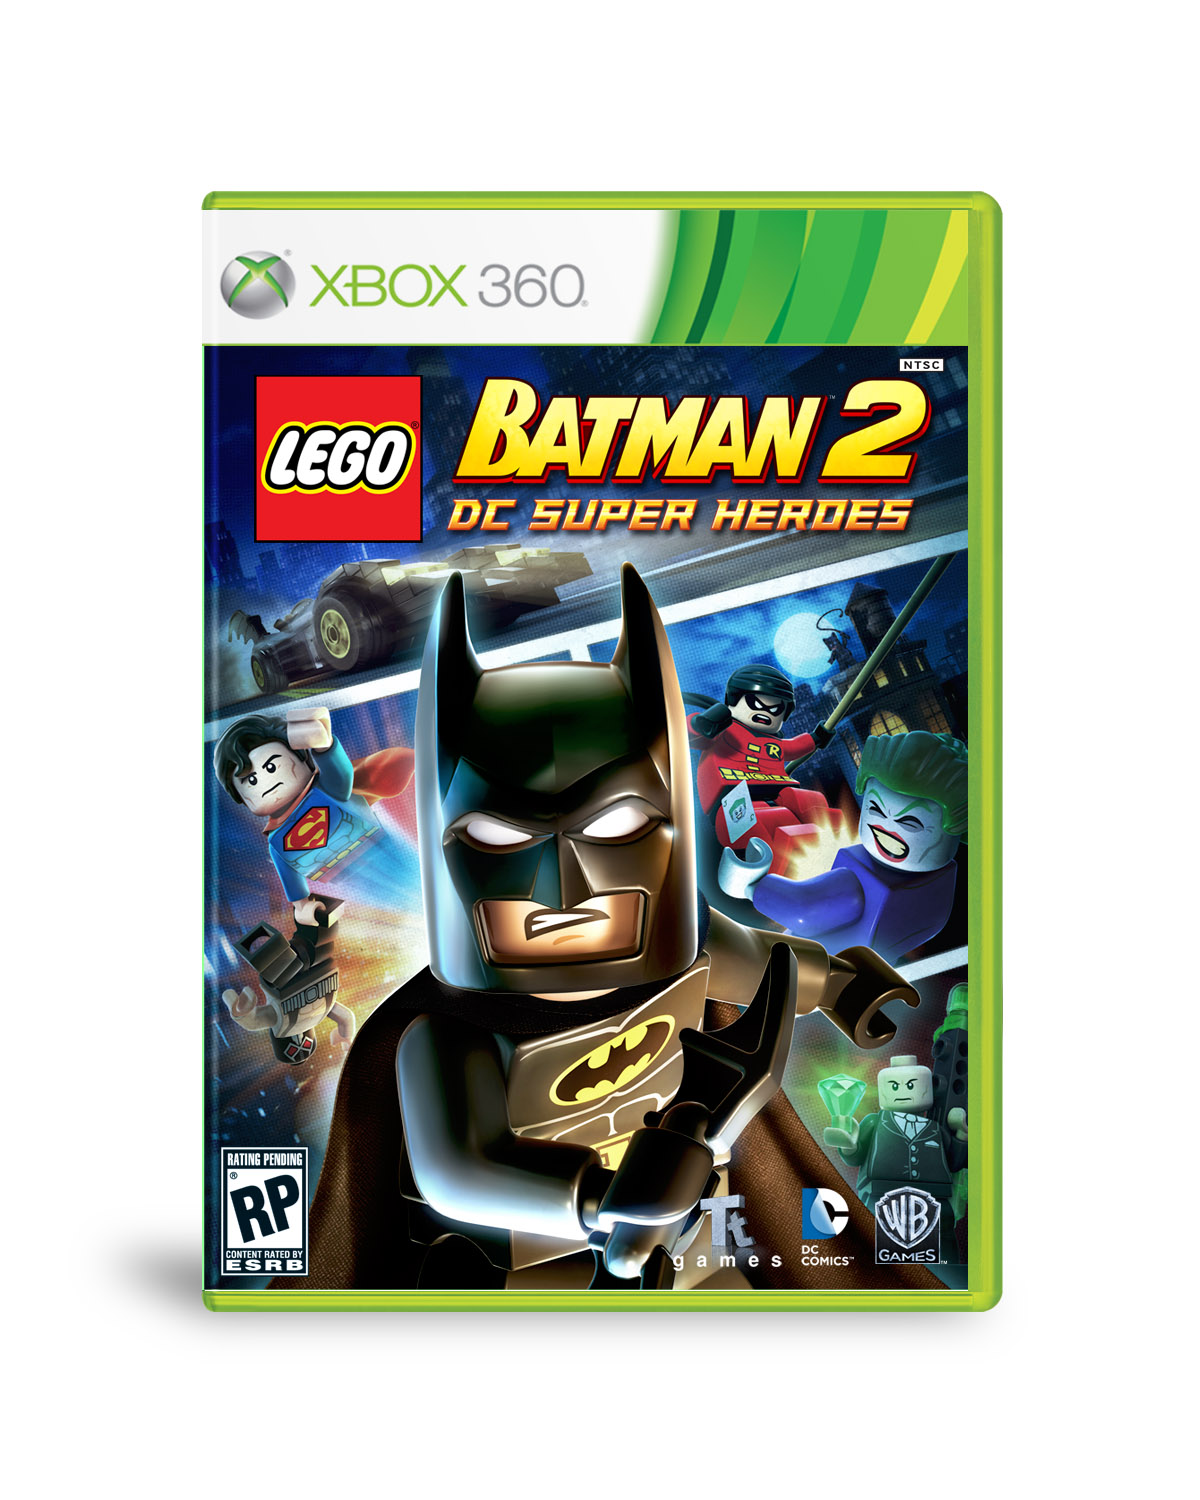 Brick Boyz: lego bat man 2 the video game